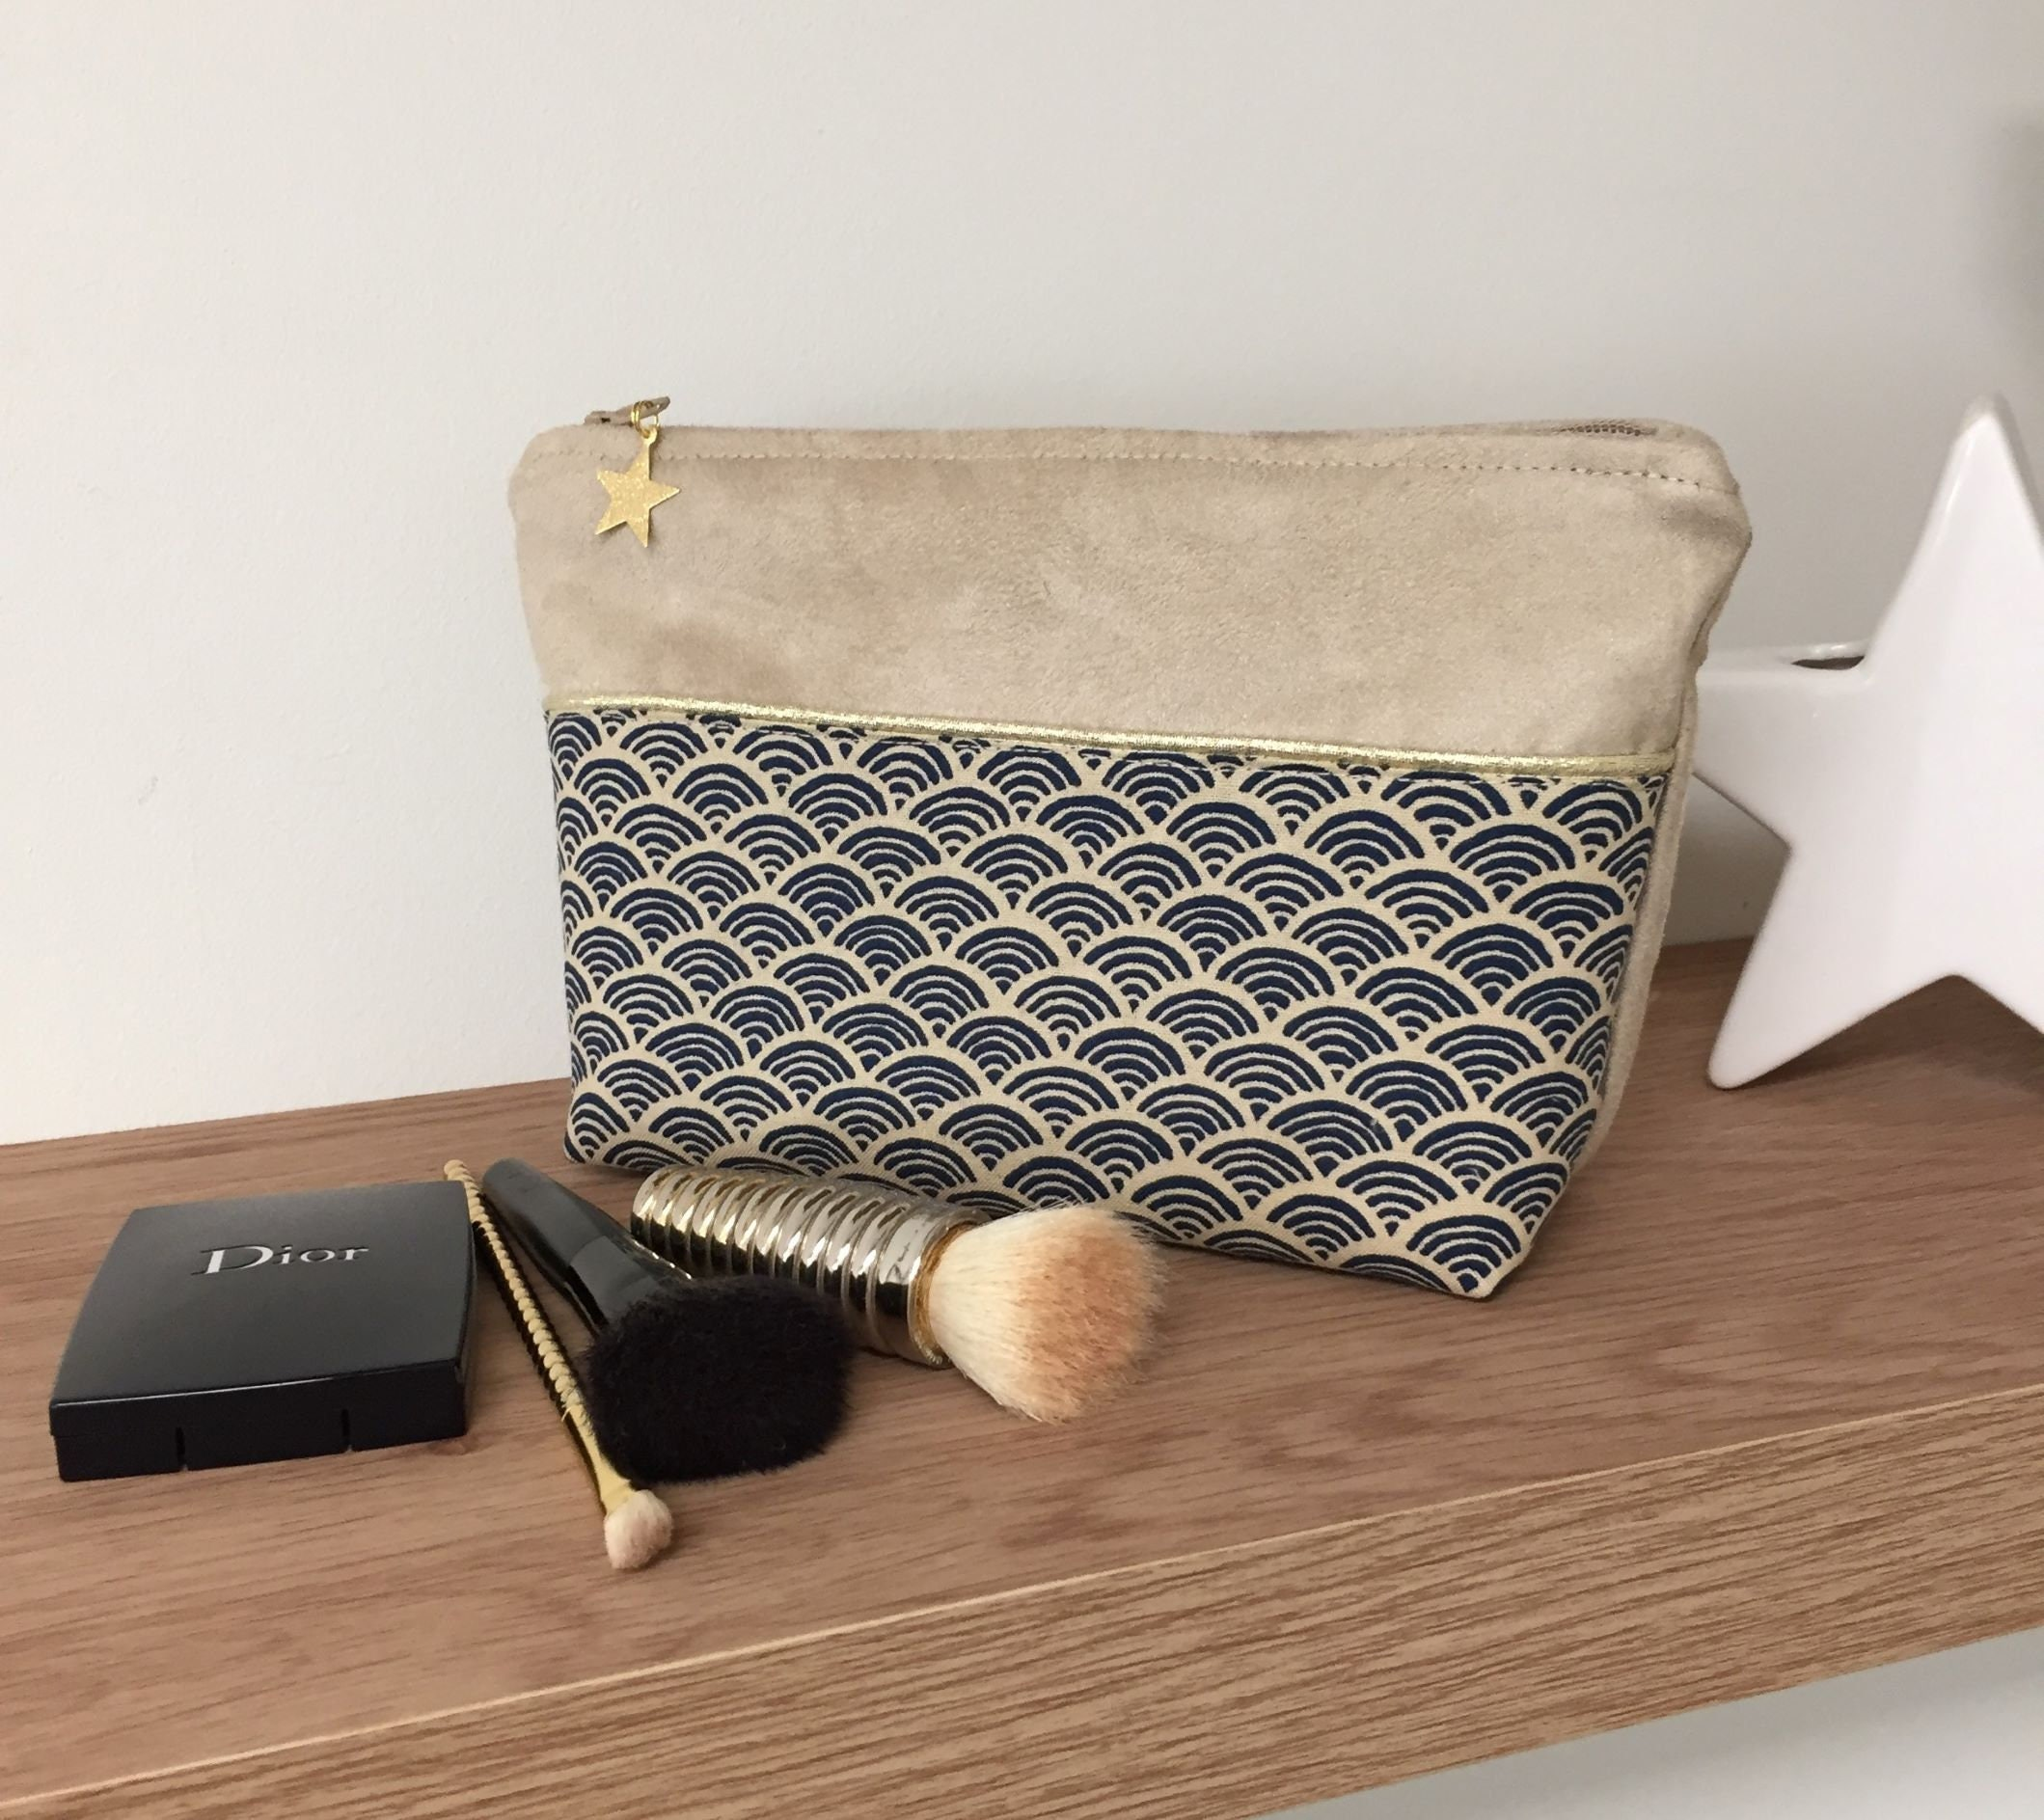 Small wave and suede Japanese fabric bag pouch / Beige, night blue and gold  make-up bag / Zipped pouch, with star / Women's gift